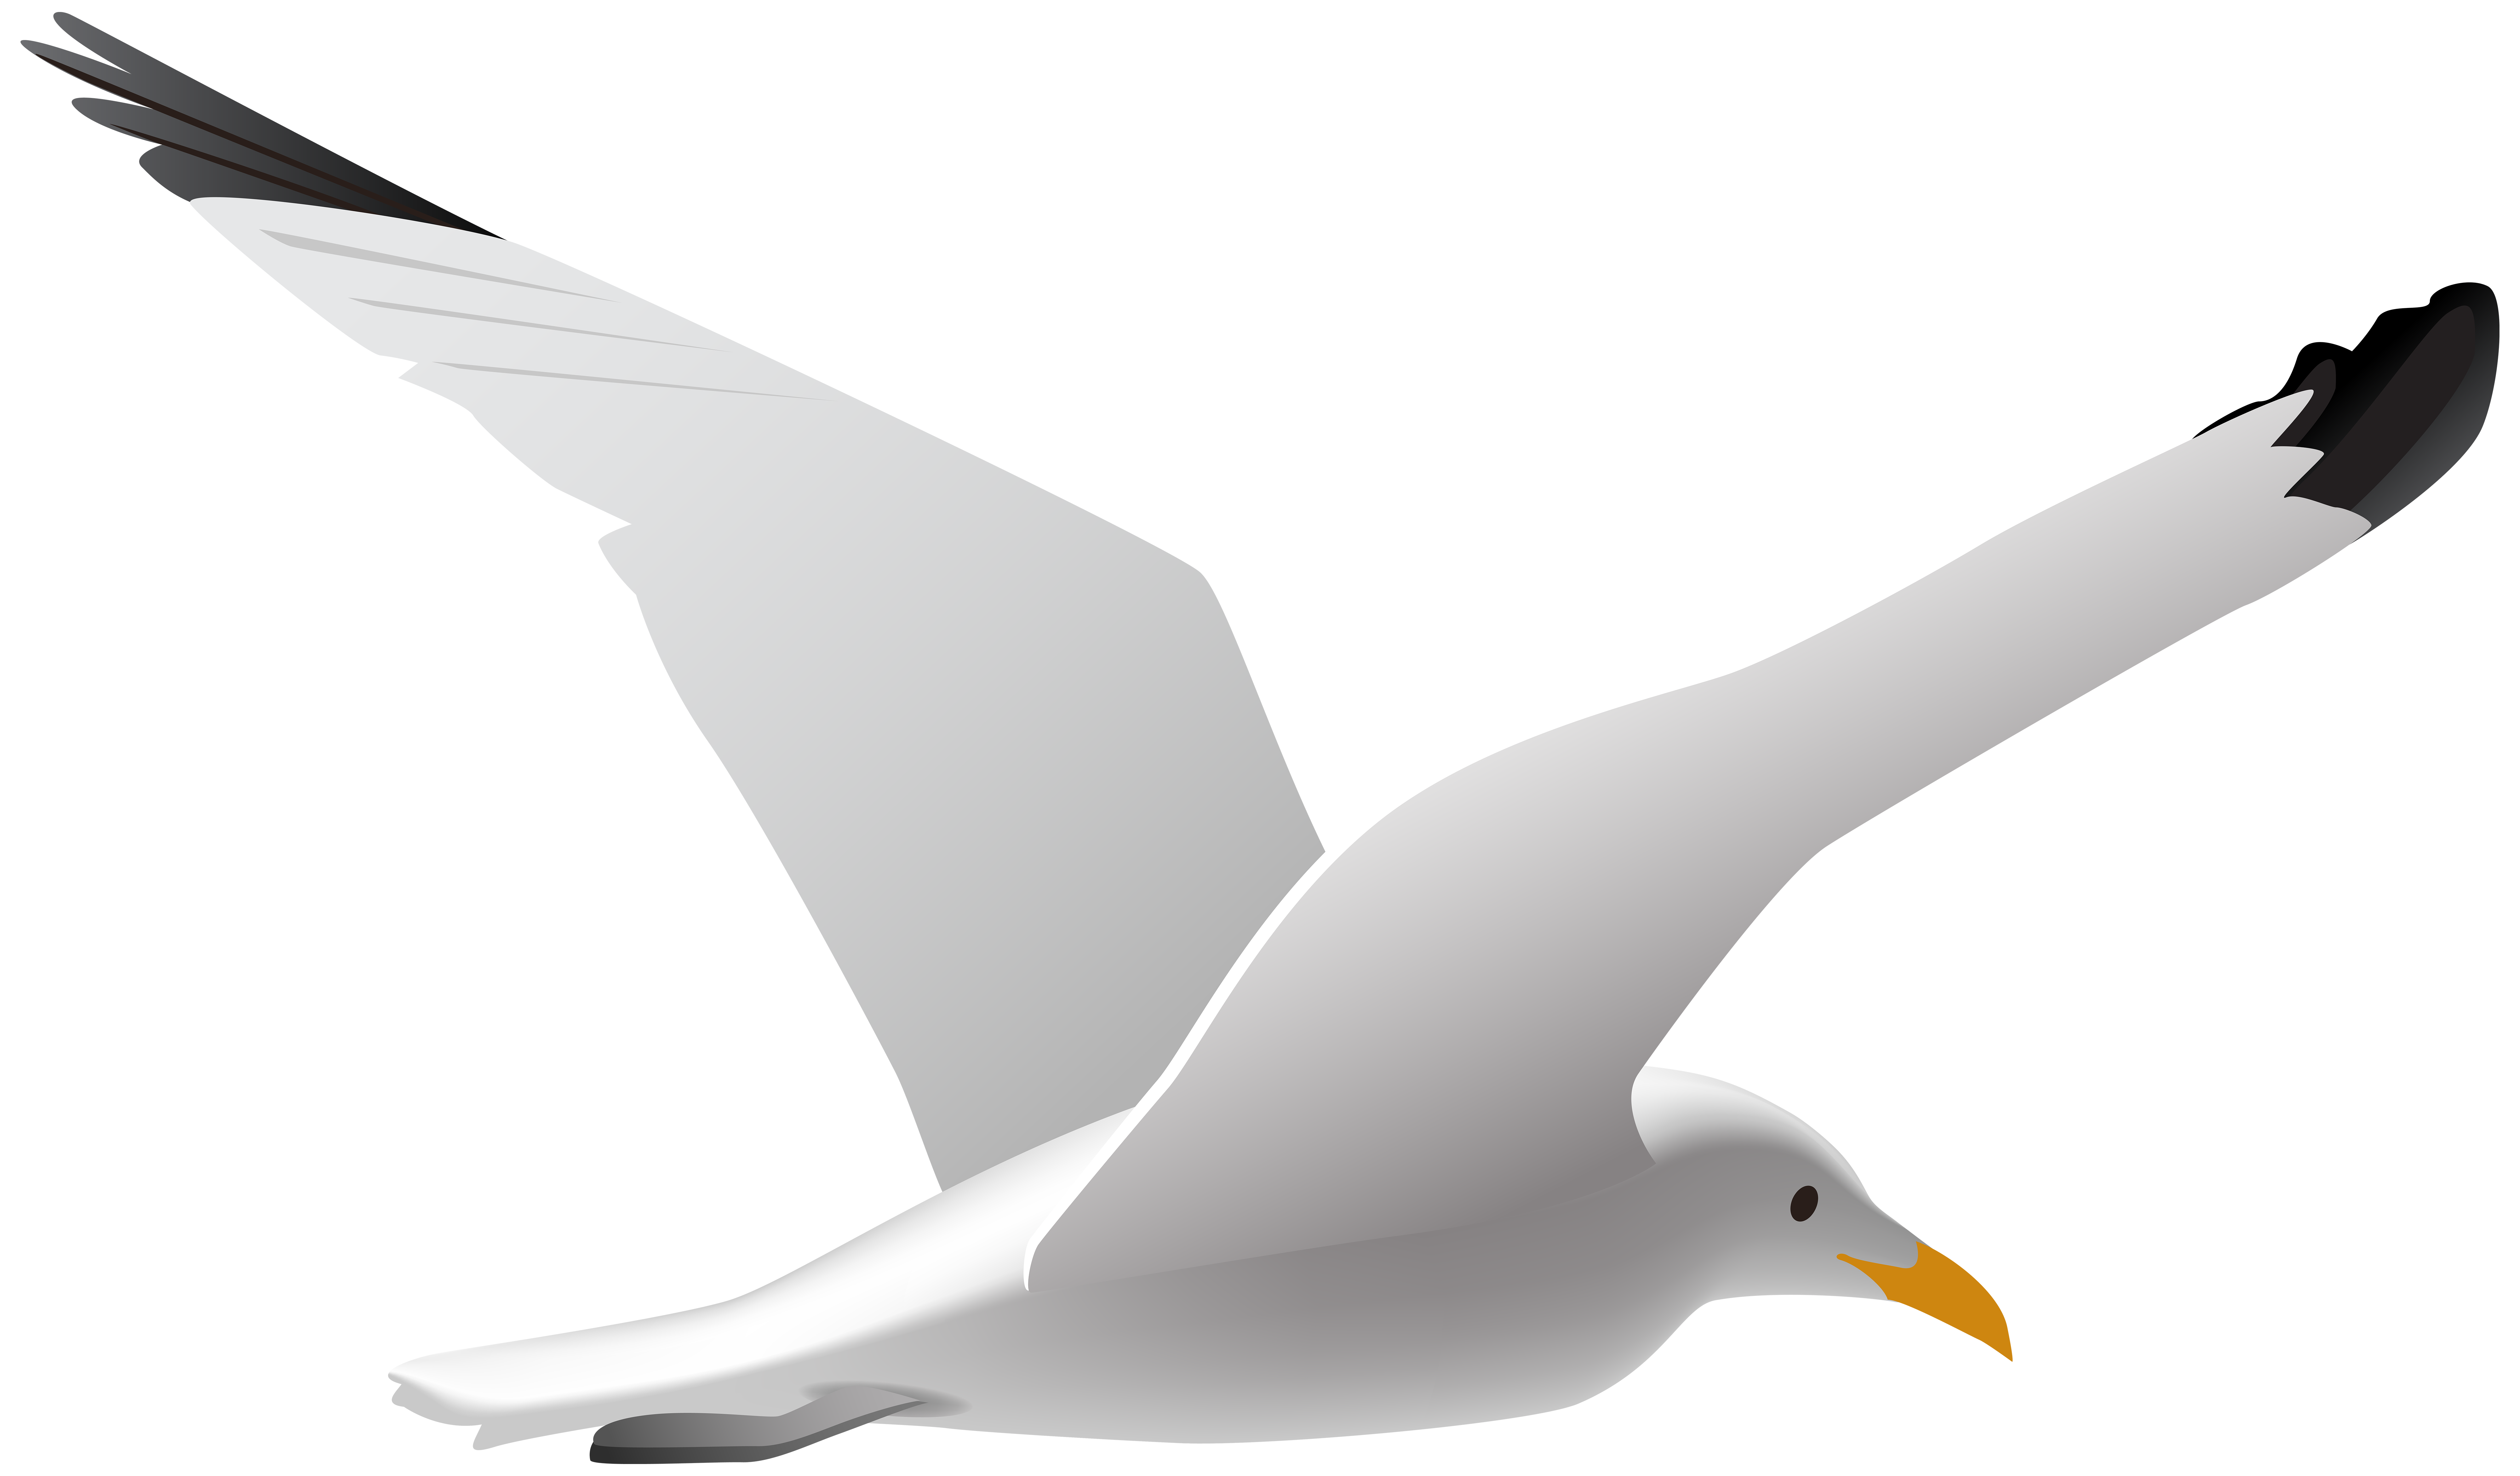 Seagull clipart. Png clip art image